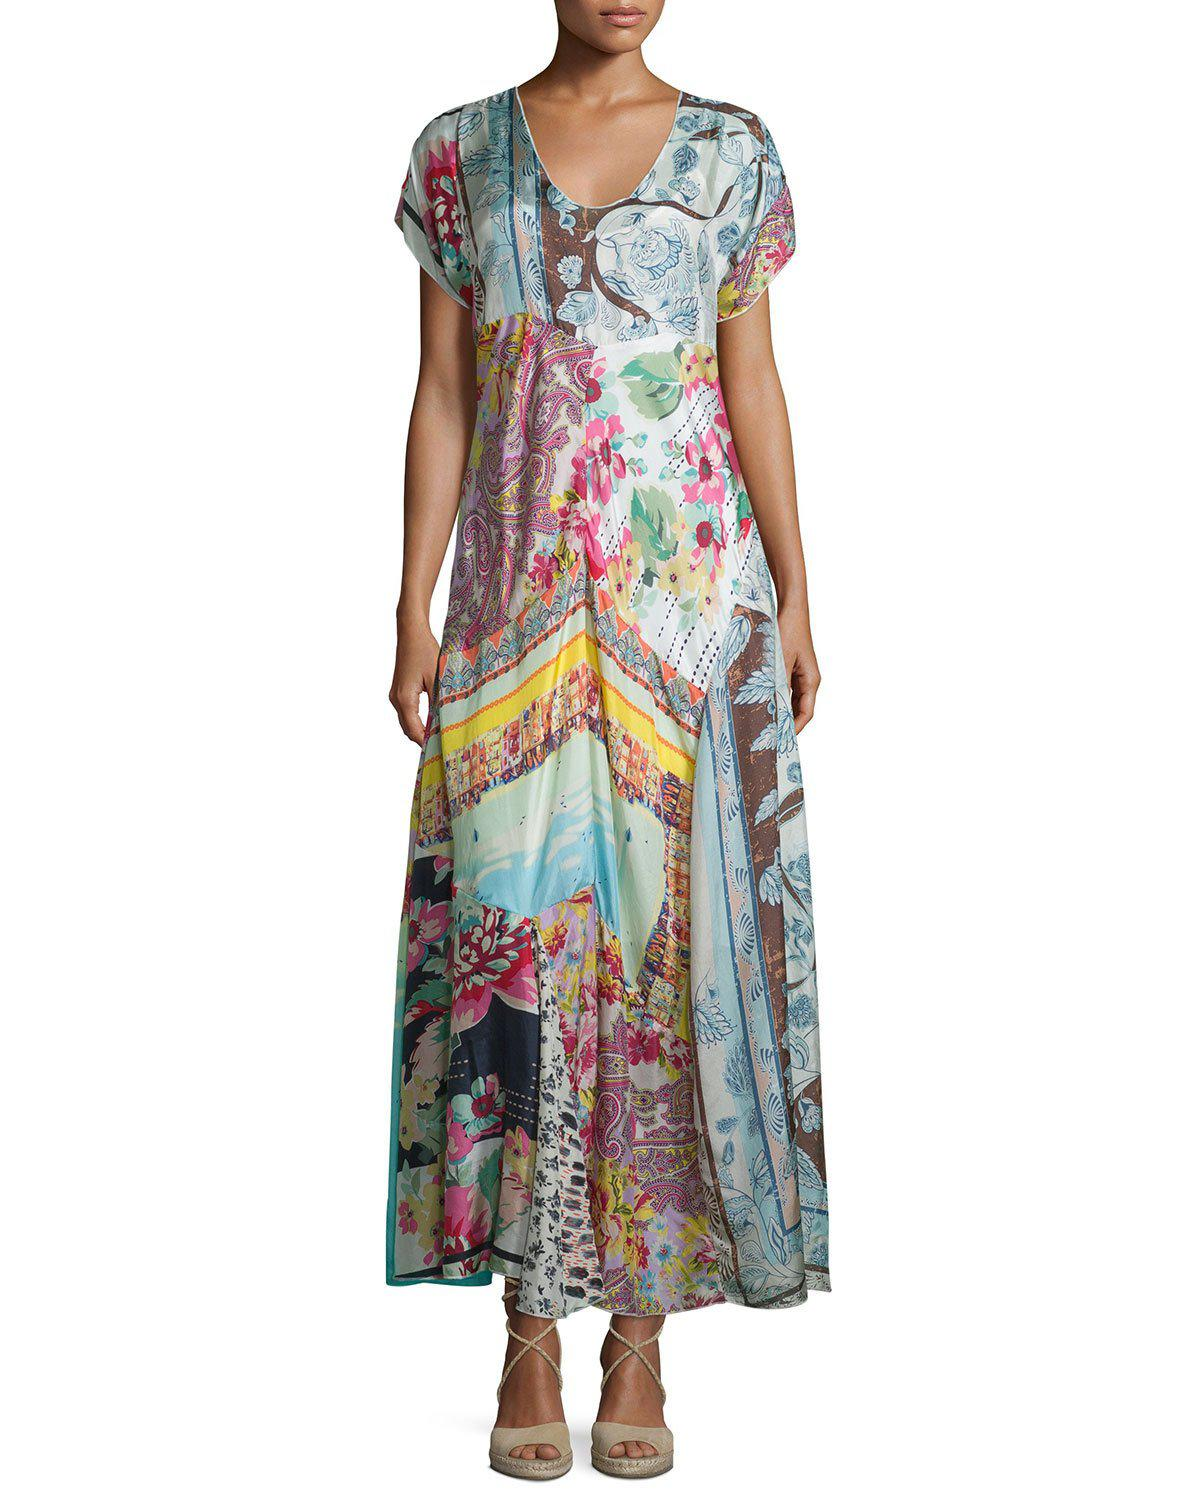 Johnny Was Petite Printed Georgette Maxi Dress - Lyst